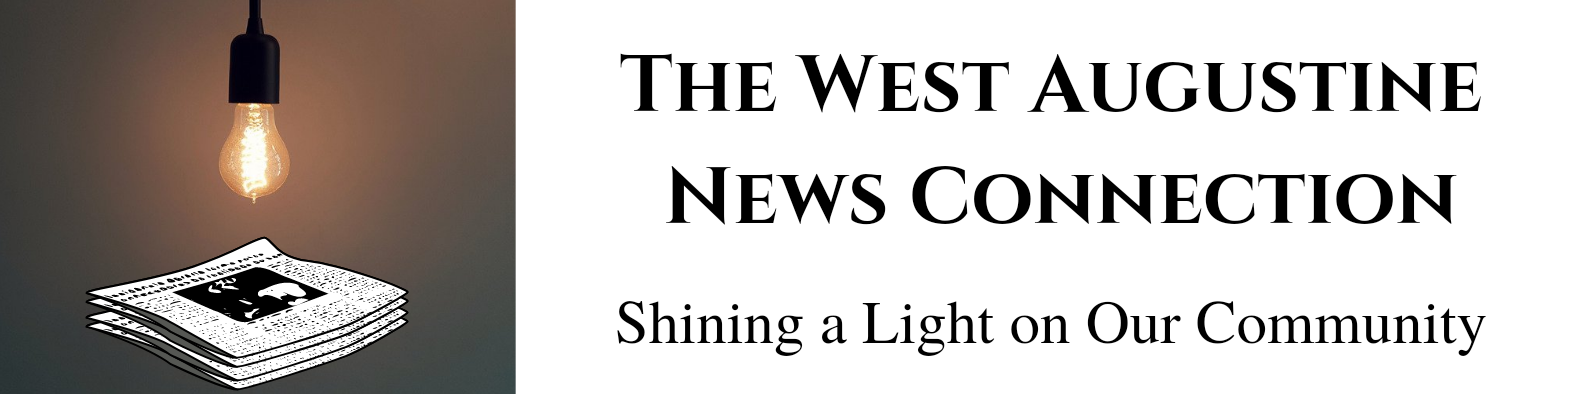 The West Augustine News Connection